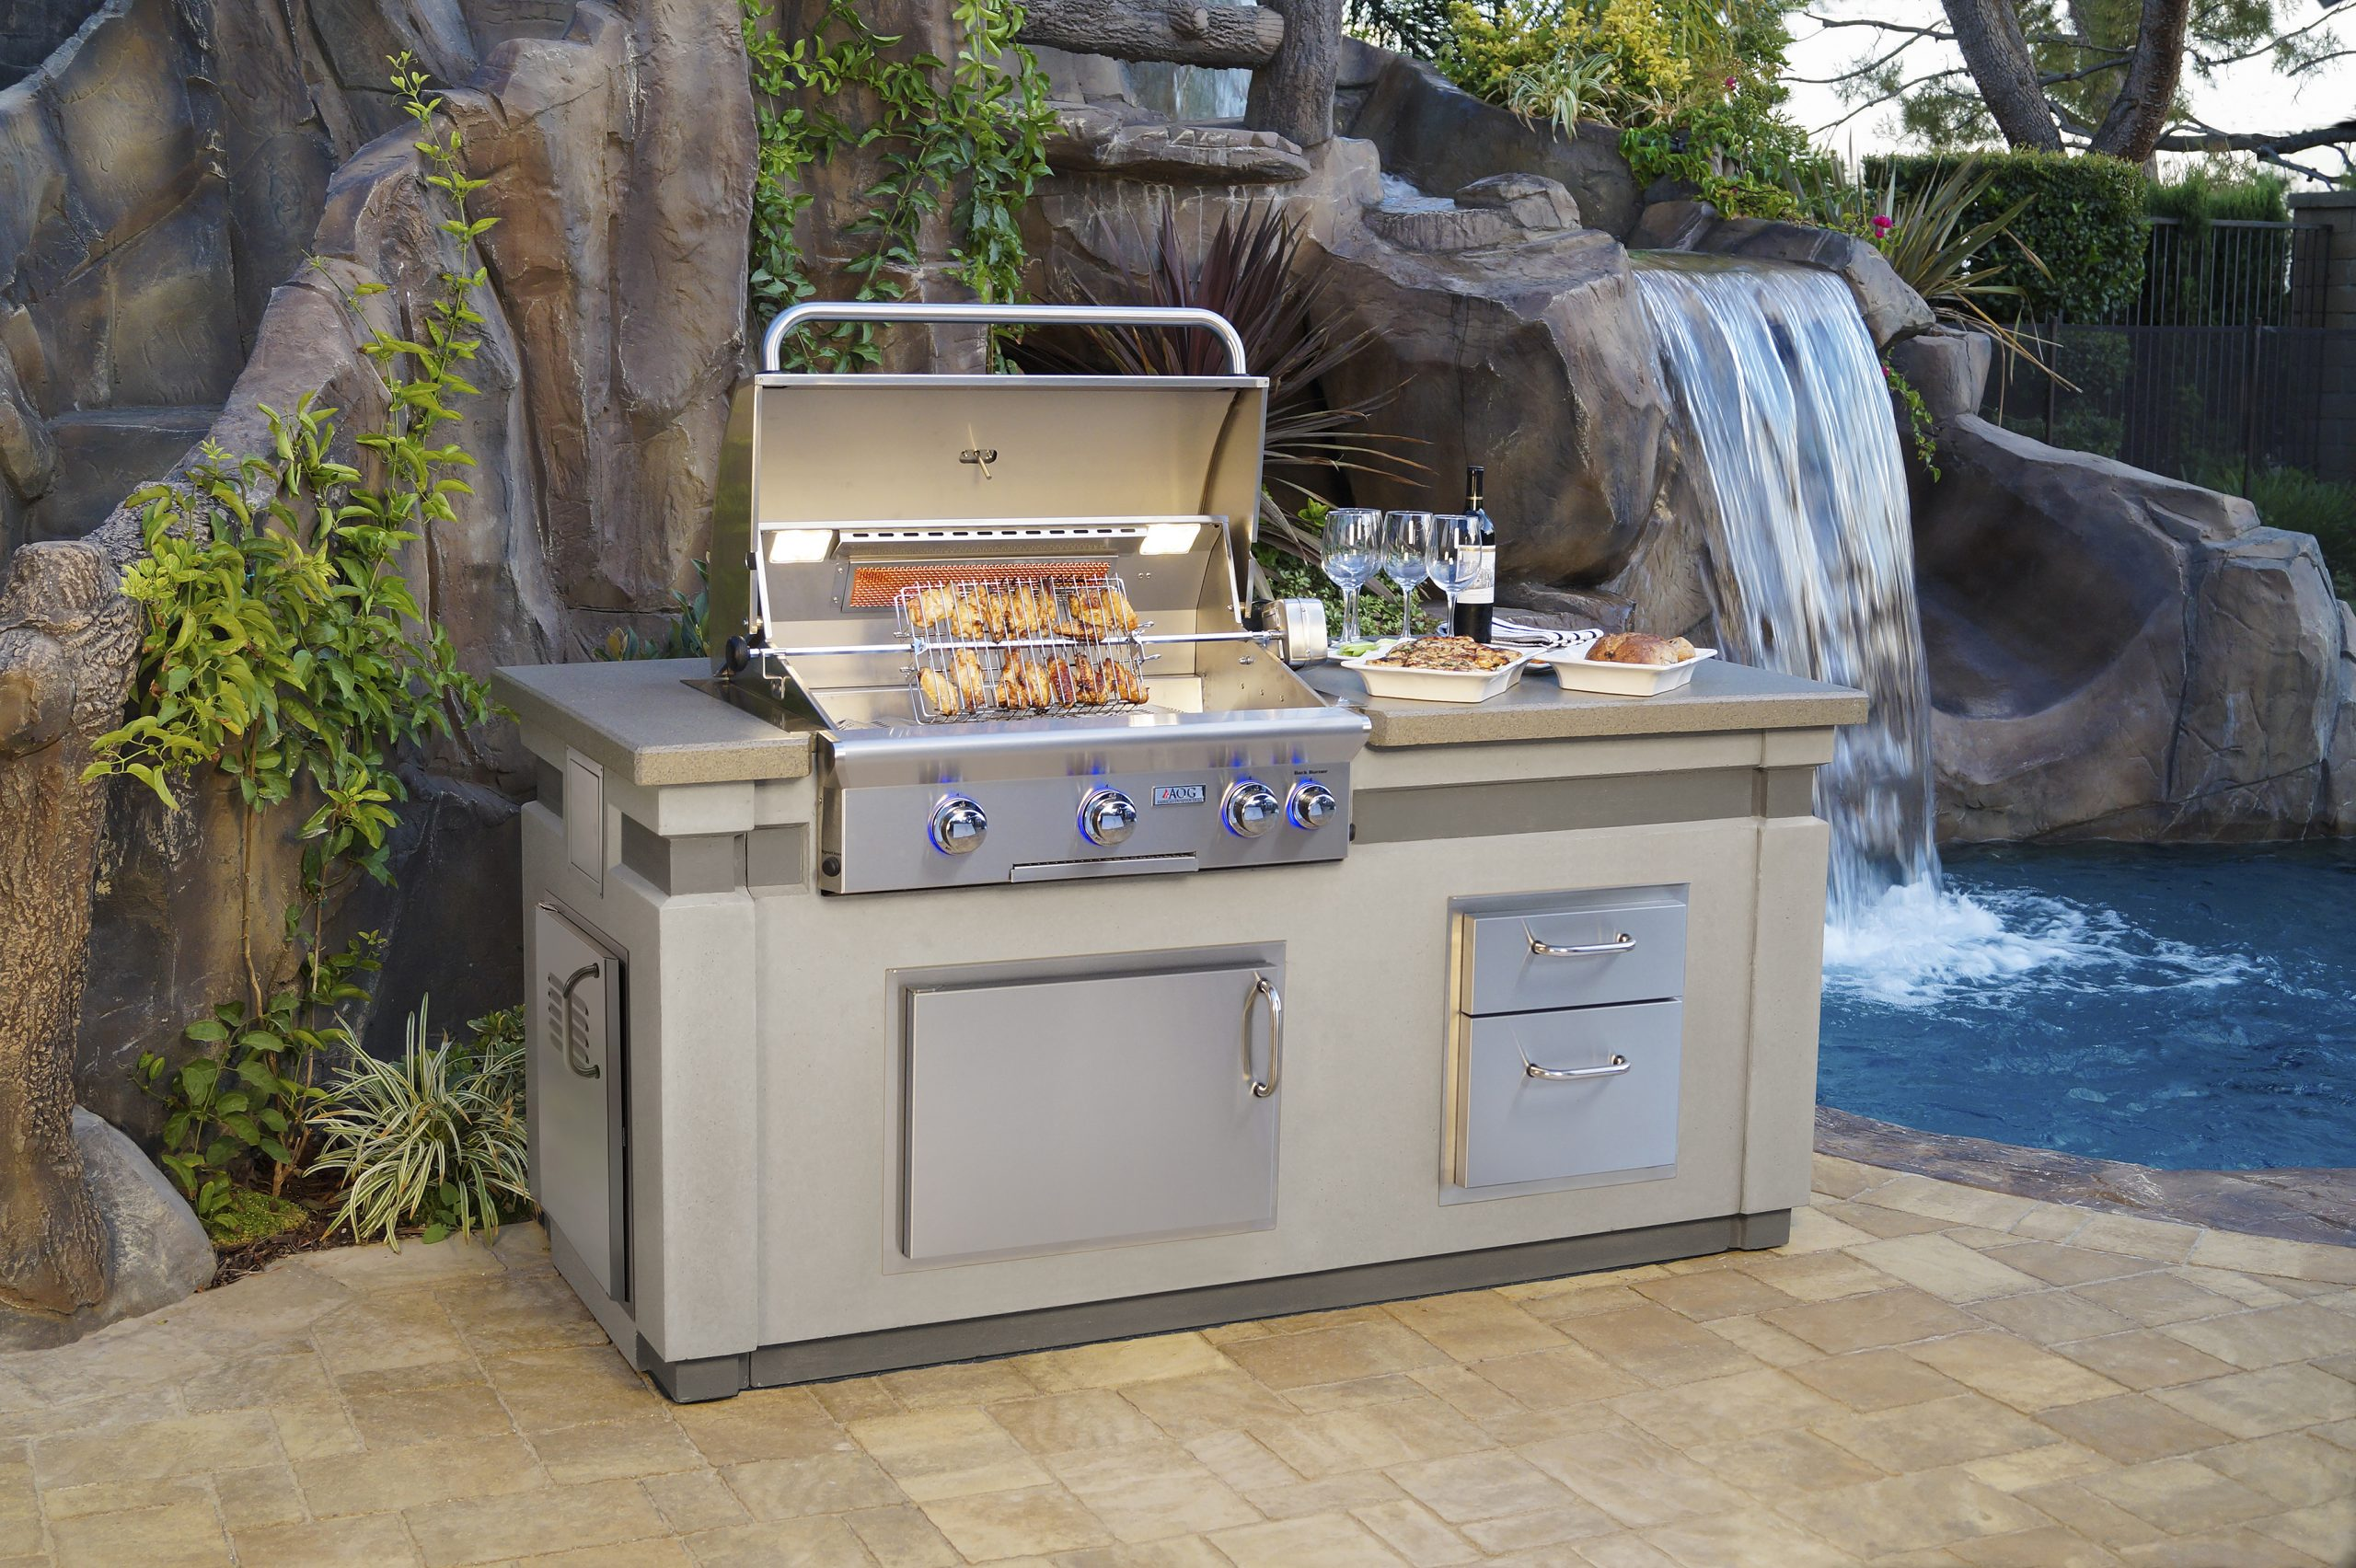 Outdoor Kitchens & Gas Grills Visual List Item Image